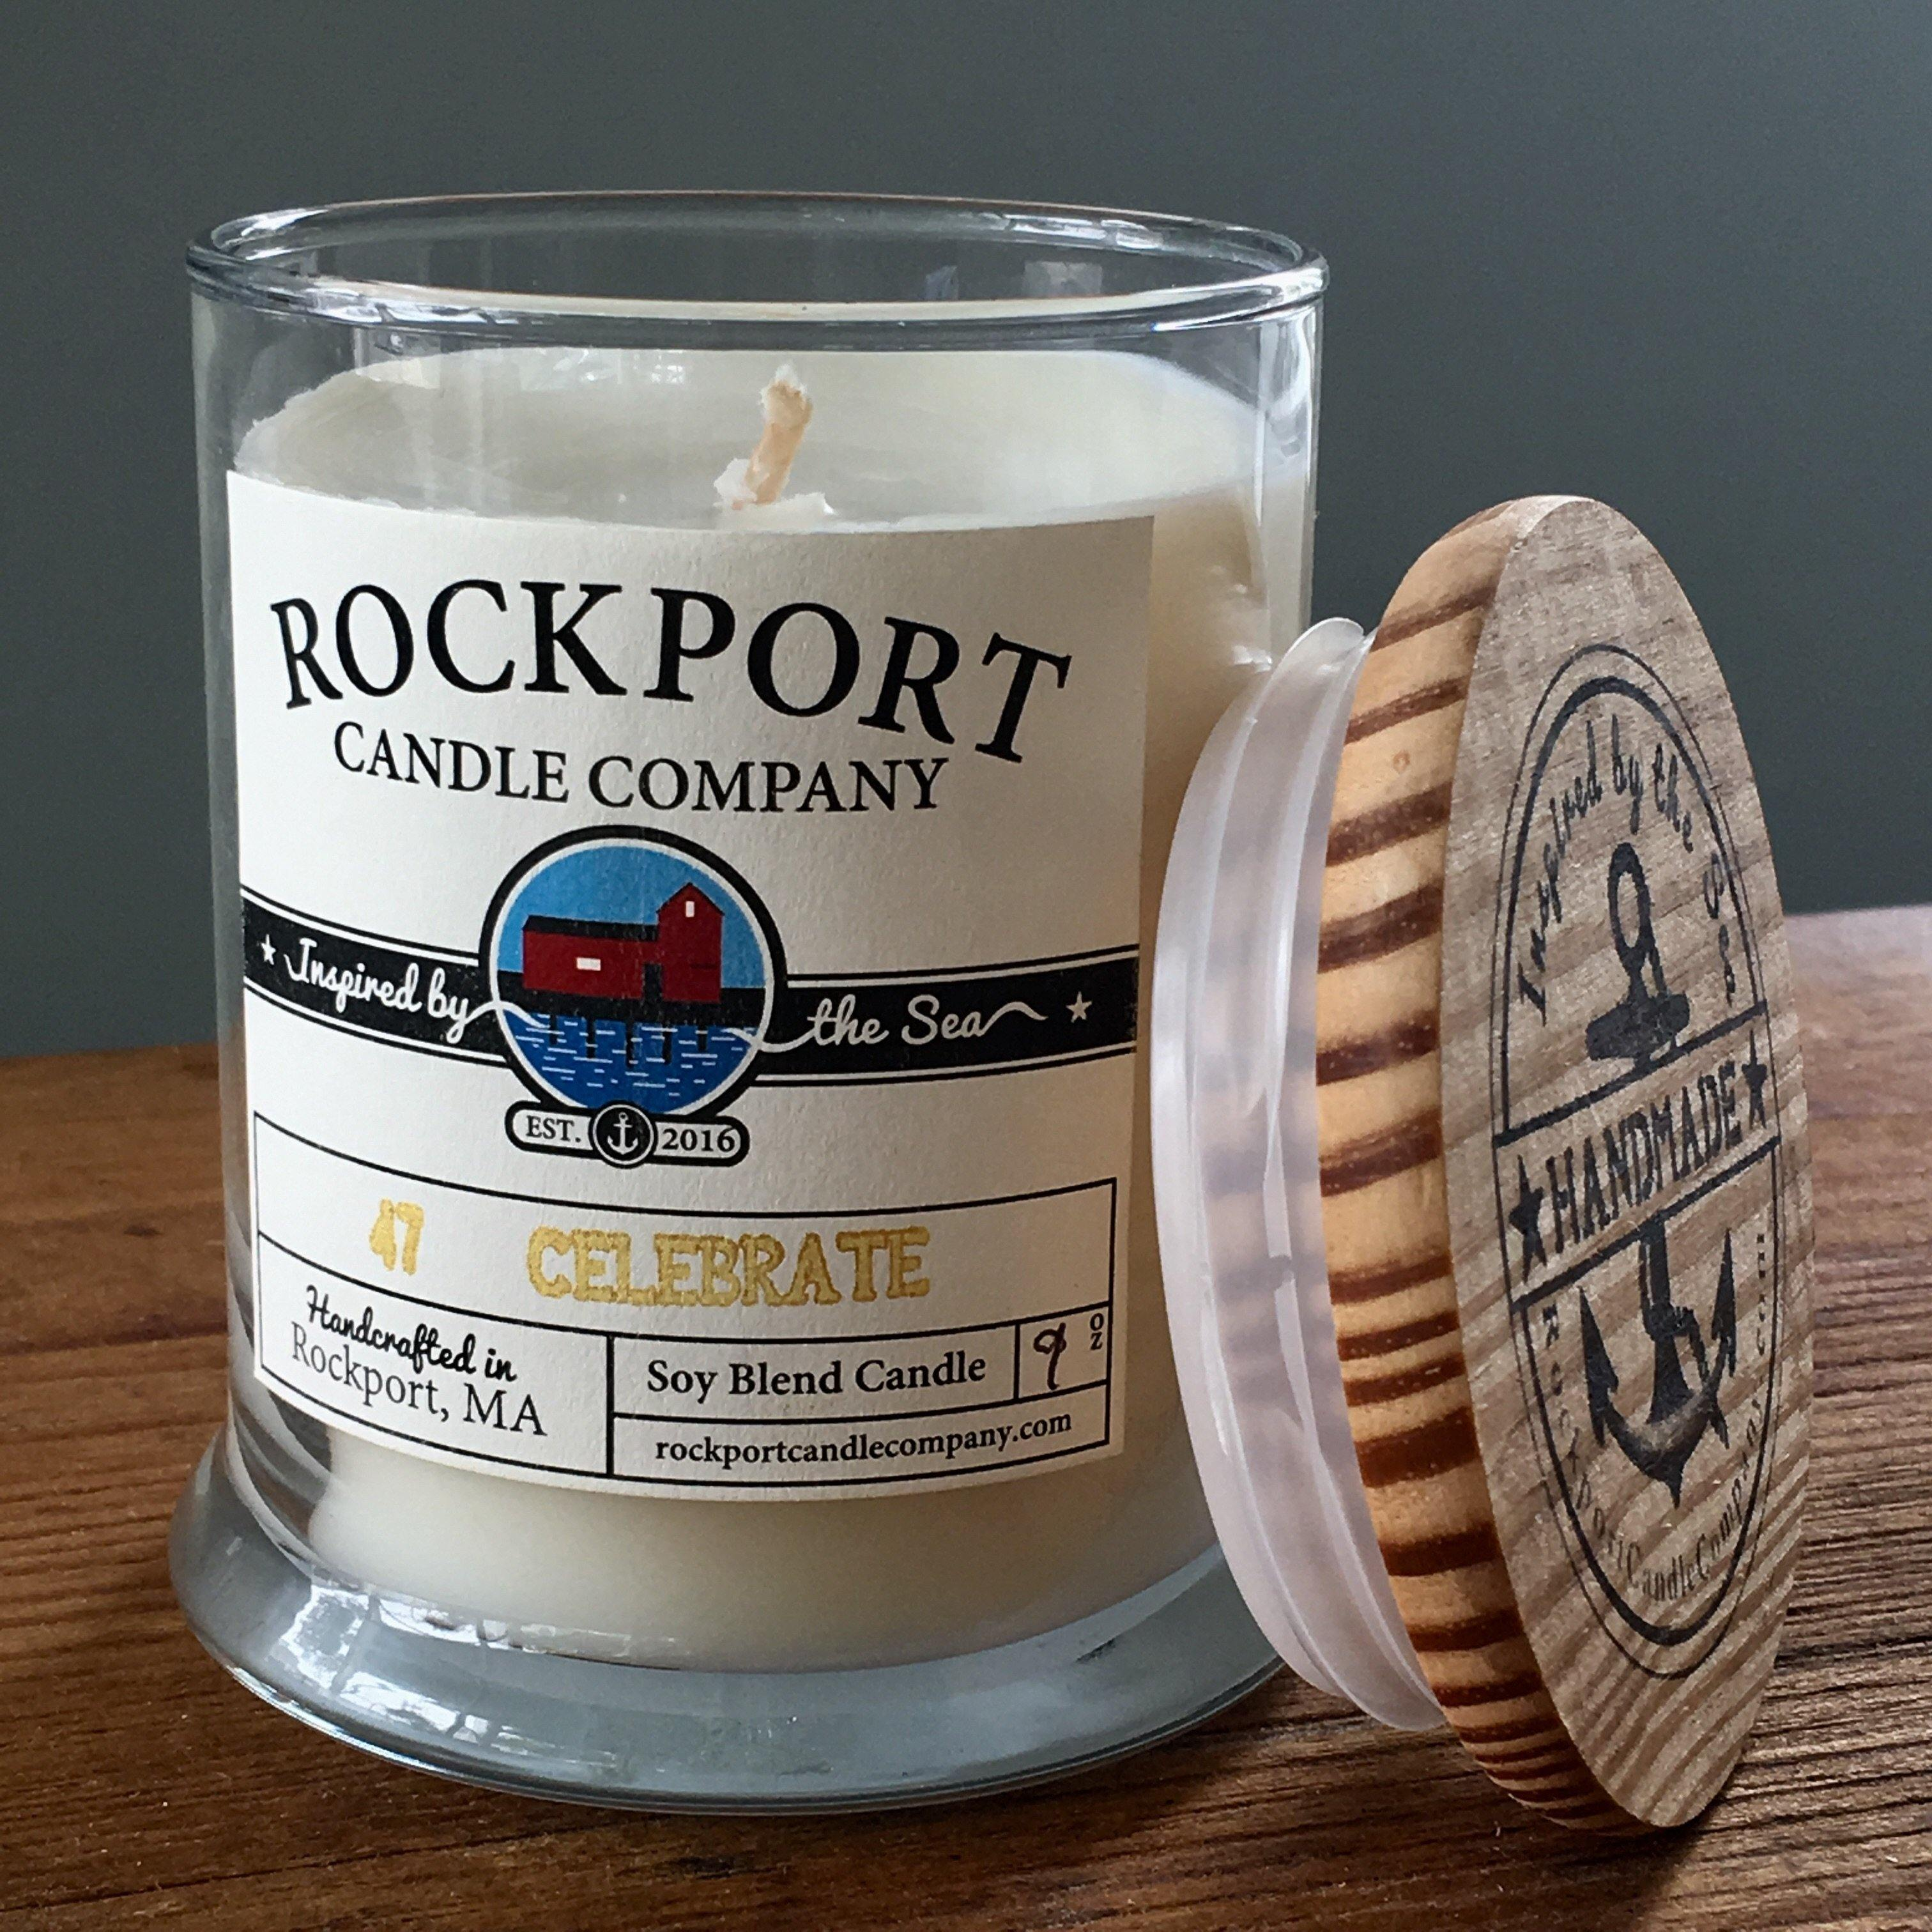 47 Celebrate - Rockport Candle Company